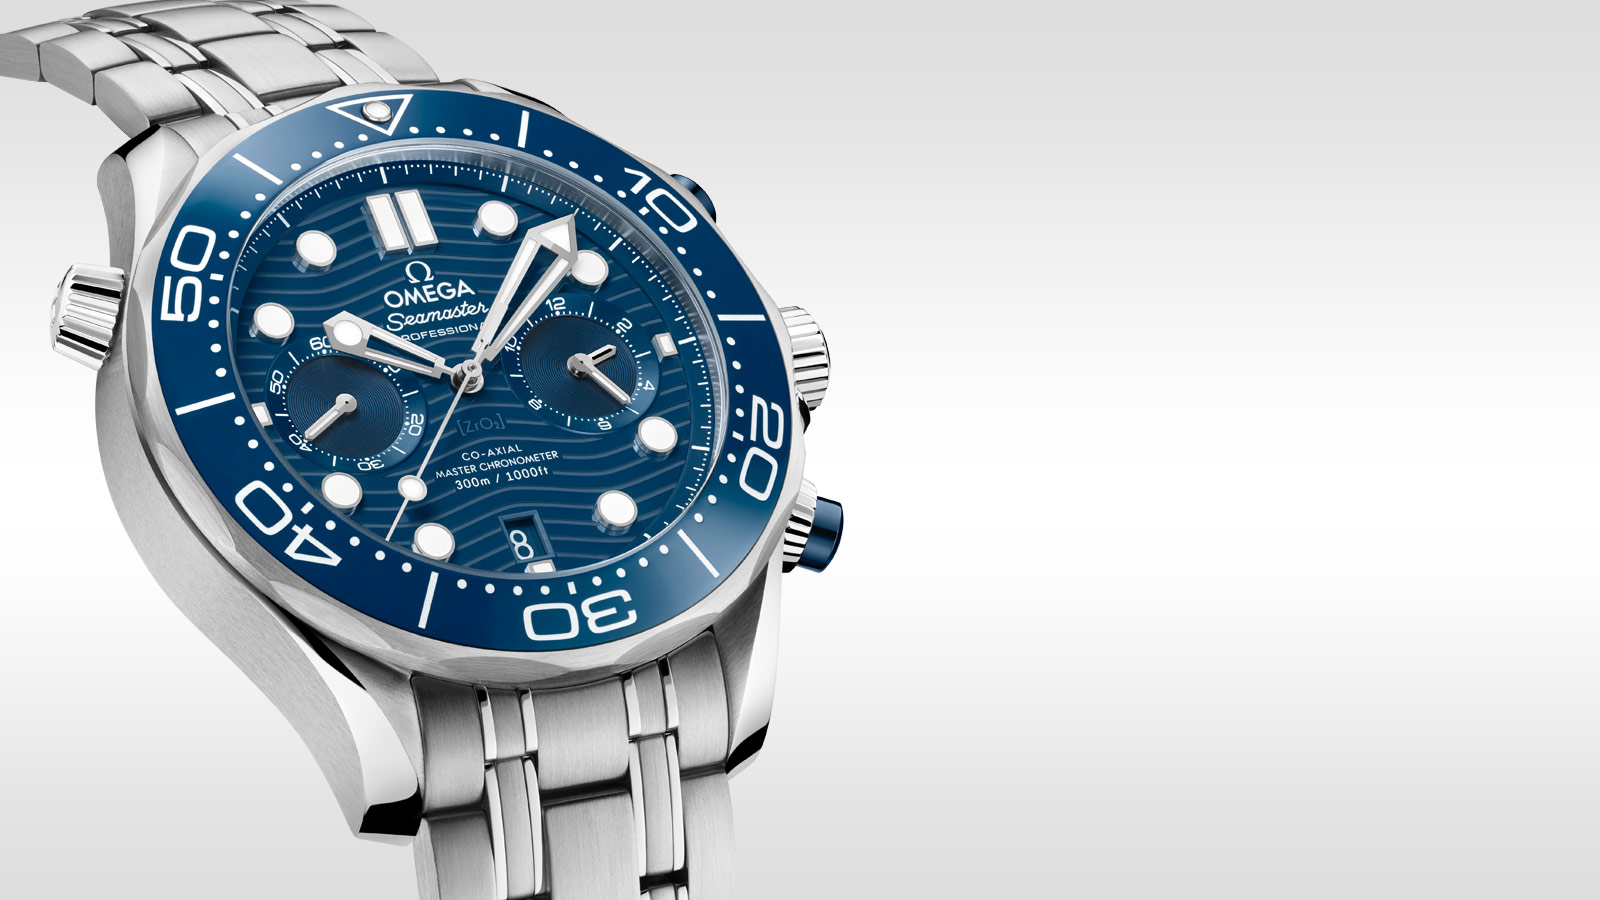 Seamaster Diver 300 M Diver 300M Omega Co‑Axial Master Chronometer Chronograph 44 mm - 210.30.44.51.03.001 - View 1